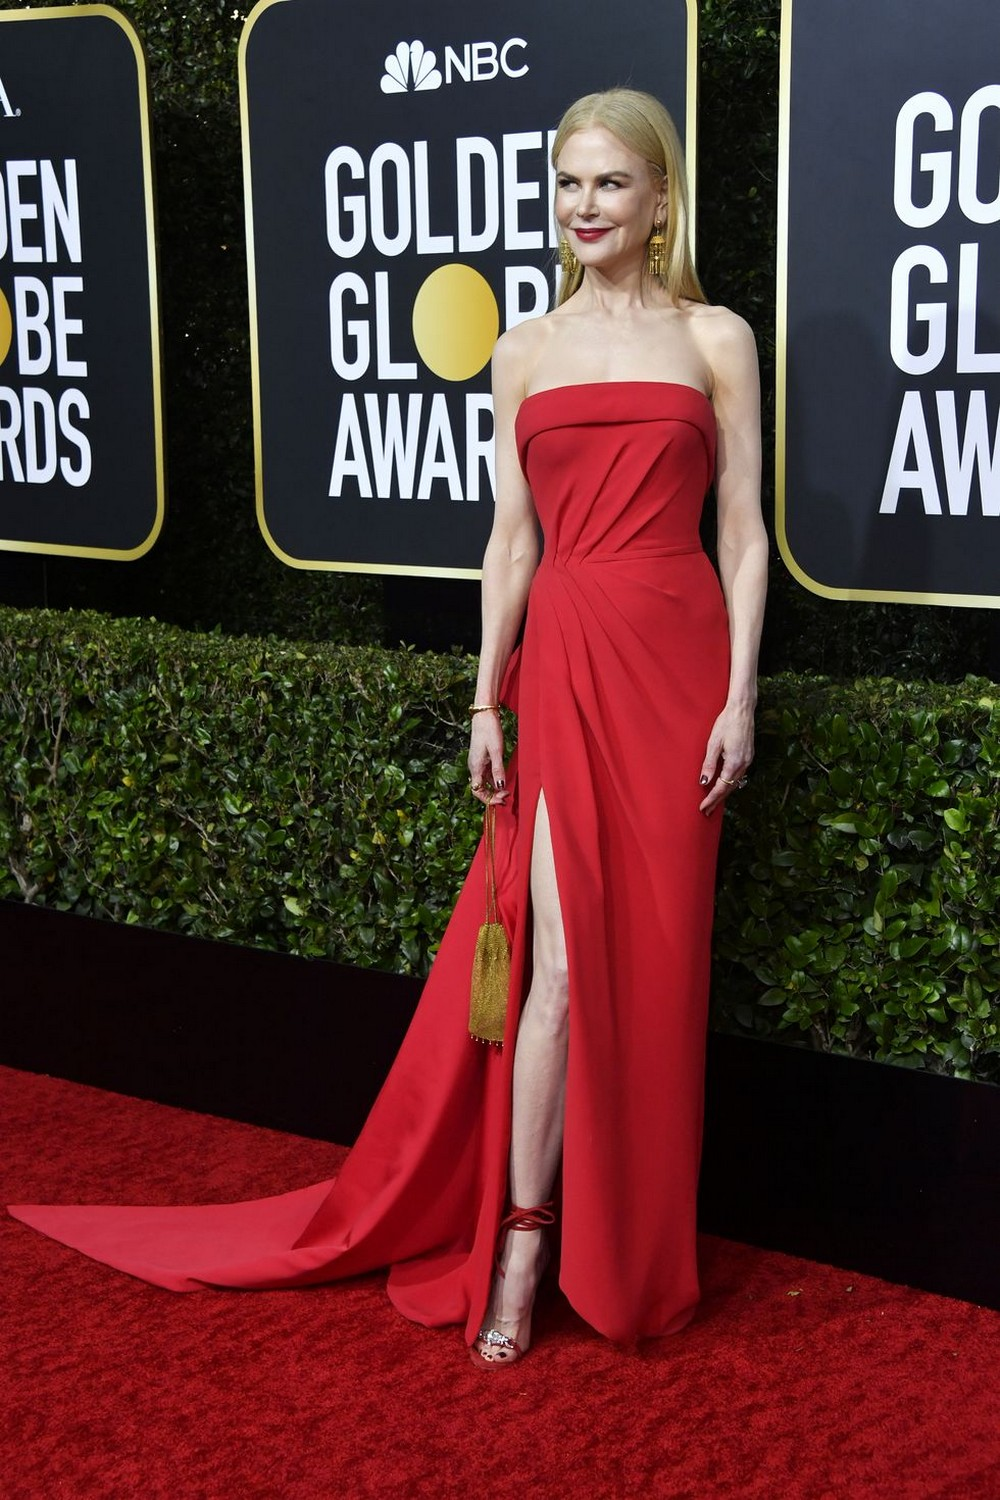 Golden Globes 2020 The Most Exciting Looks Seen on the Red Carpet 7 golden globes 2020 Golden Globes 2020: The Most Exciting Looks Seen on the Red Carpet Golden Globes 2020 The Most Exciting Looks Seen on the Red Carpet 7